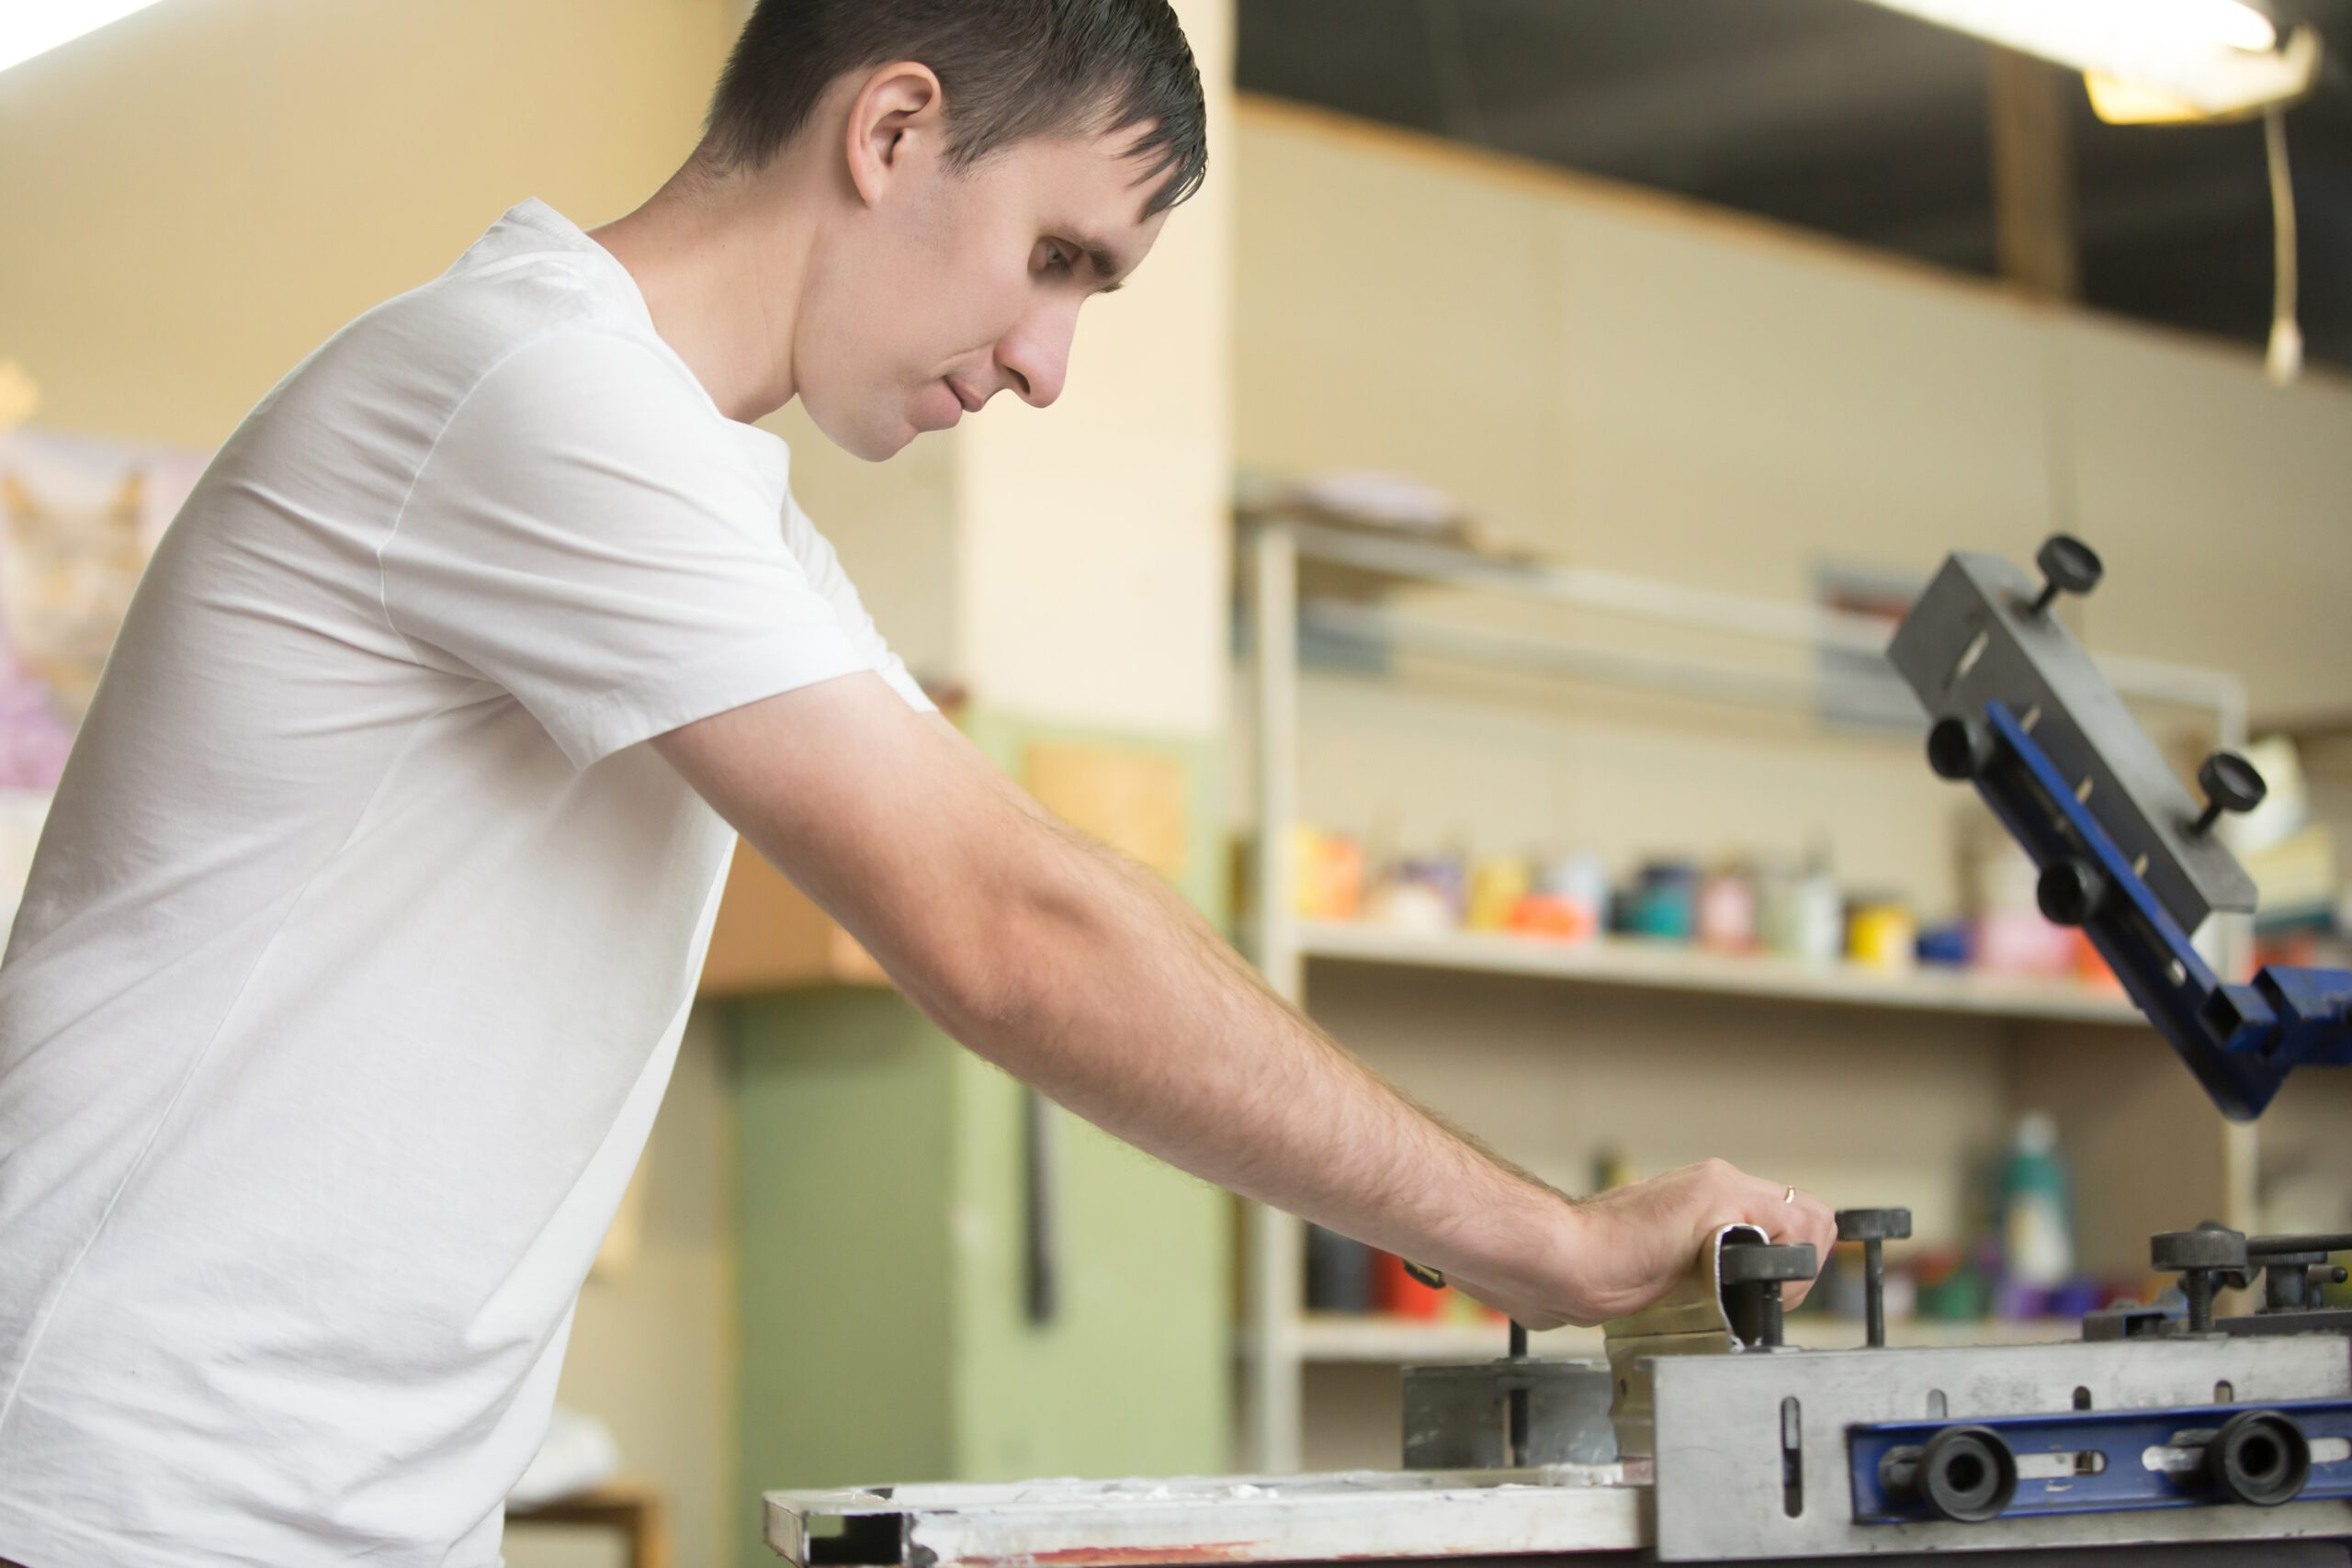 5 Ways To Motivate Your Print Shop Employees